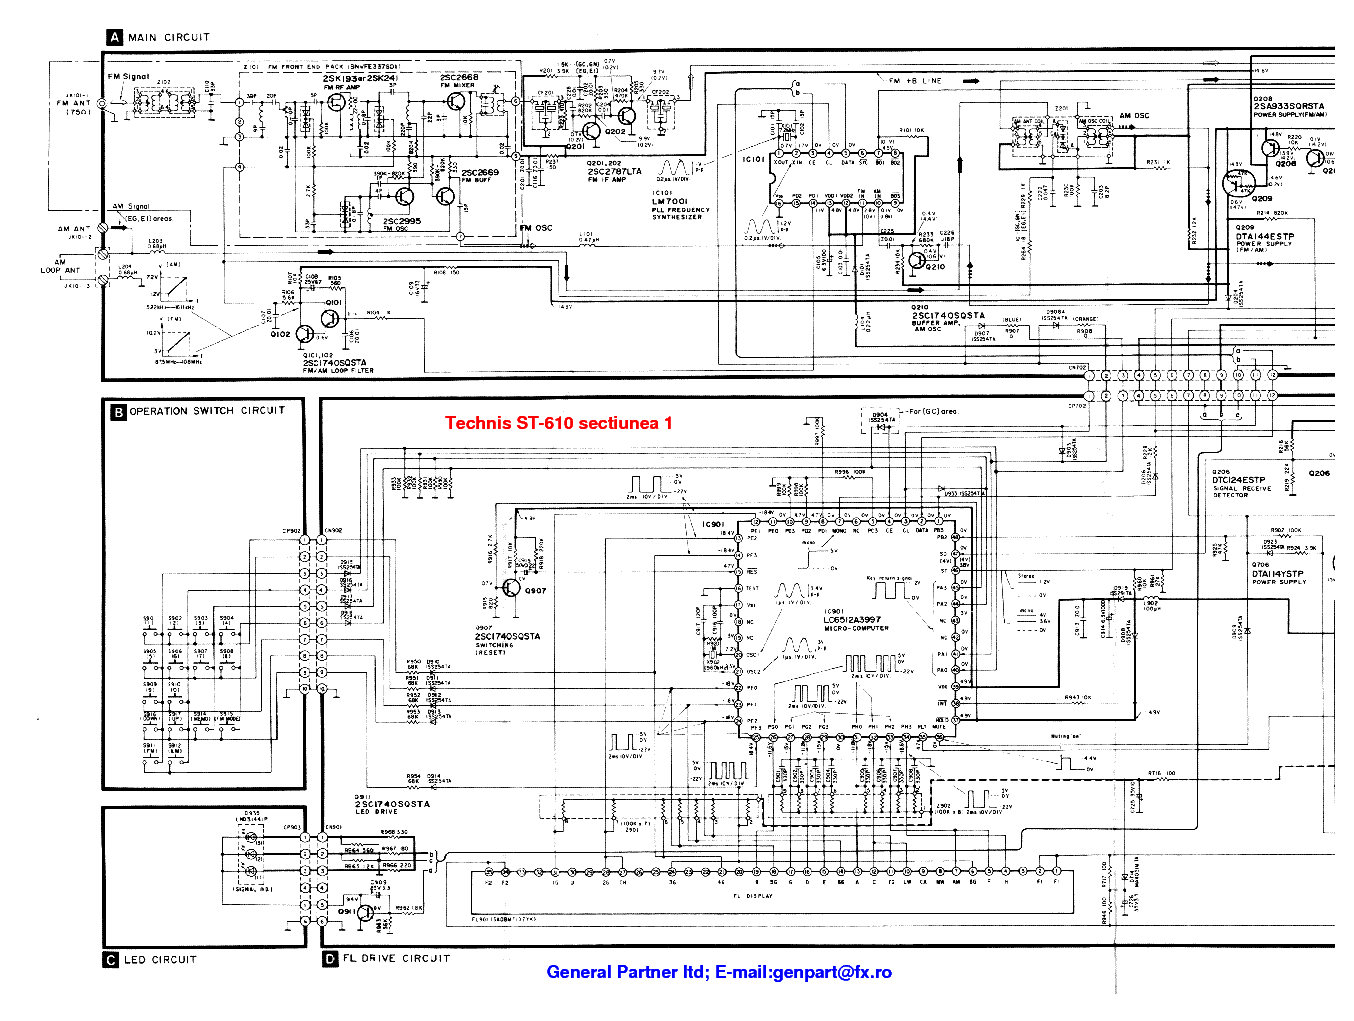 Technics Wiring Diagram Detailed Schematics Service Electrical Diagrams Tape Deck